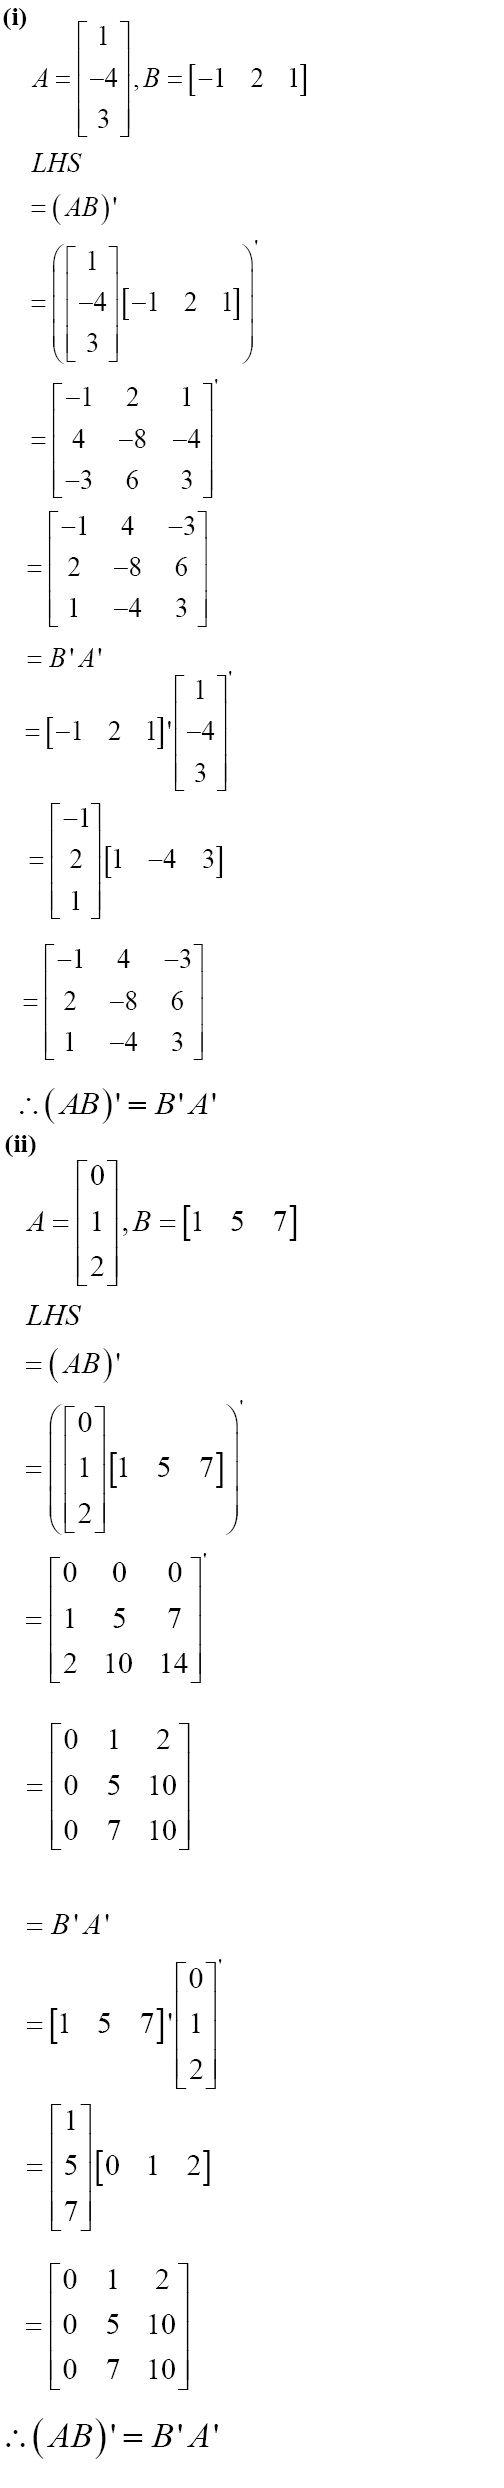 NCERT Solutions for CBSE Class 12 Mathematics ‒ Chapter 3: Matrices (Exercise 3.3, Solution 5)